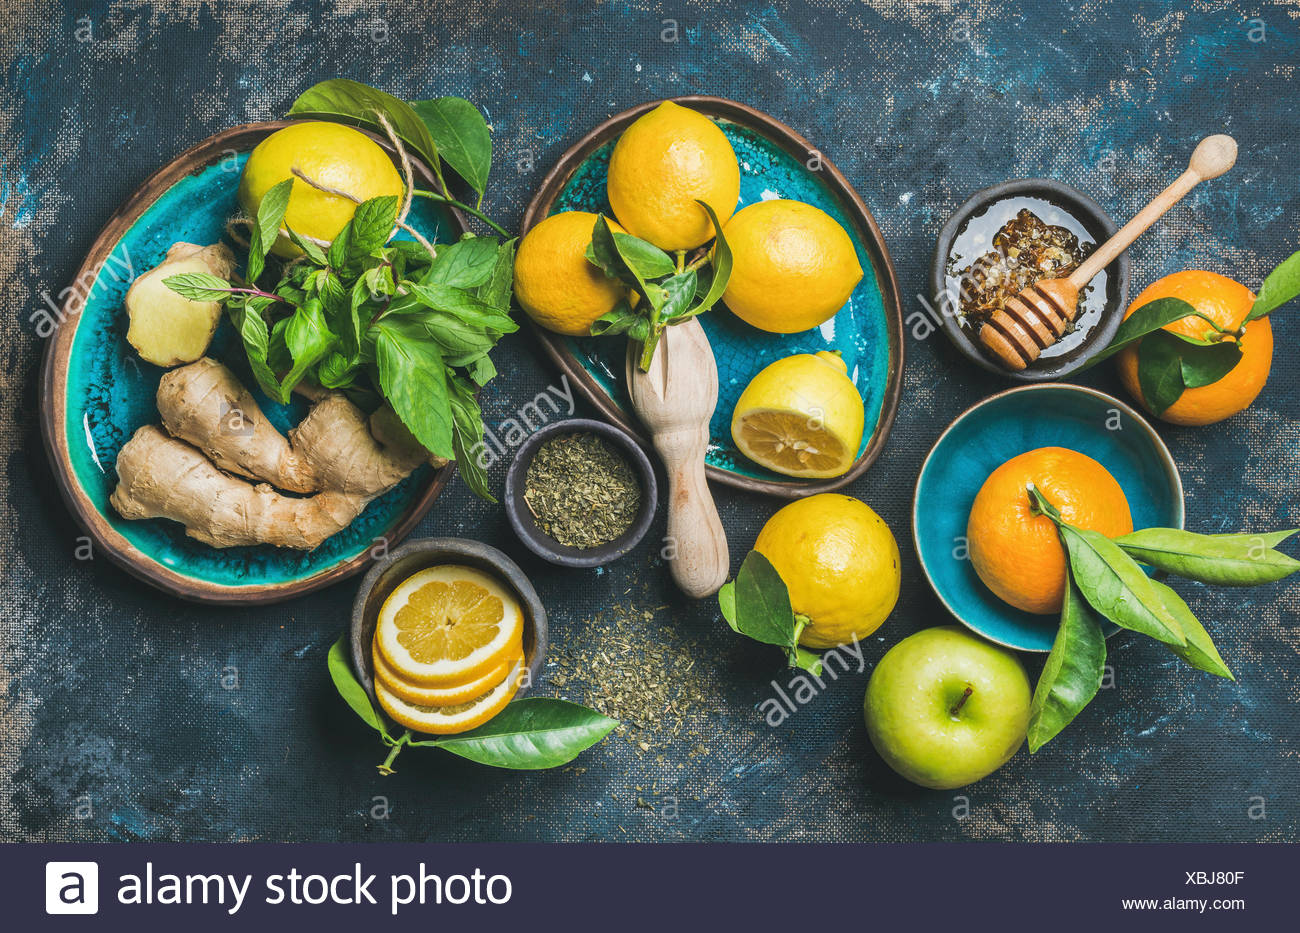 Ingredients for making natural hot drink in blue ceramic plates over dark blue shabby background, top view. Oranges, mint, lemon, ginger, honey and ap - Stock Image